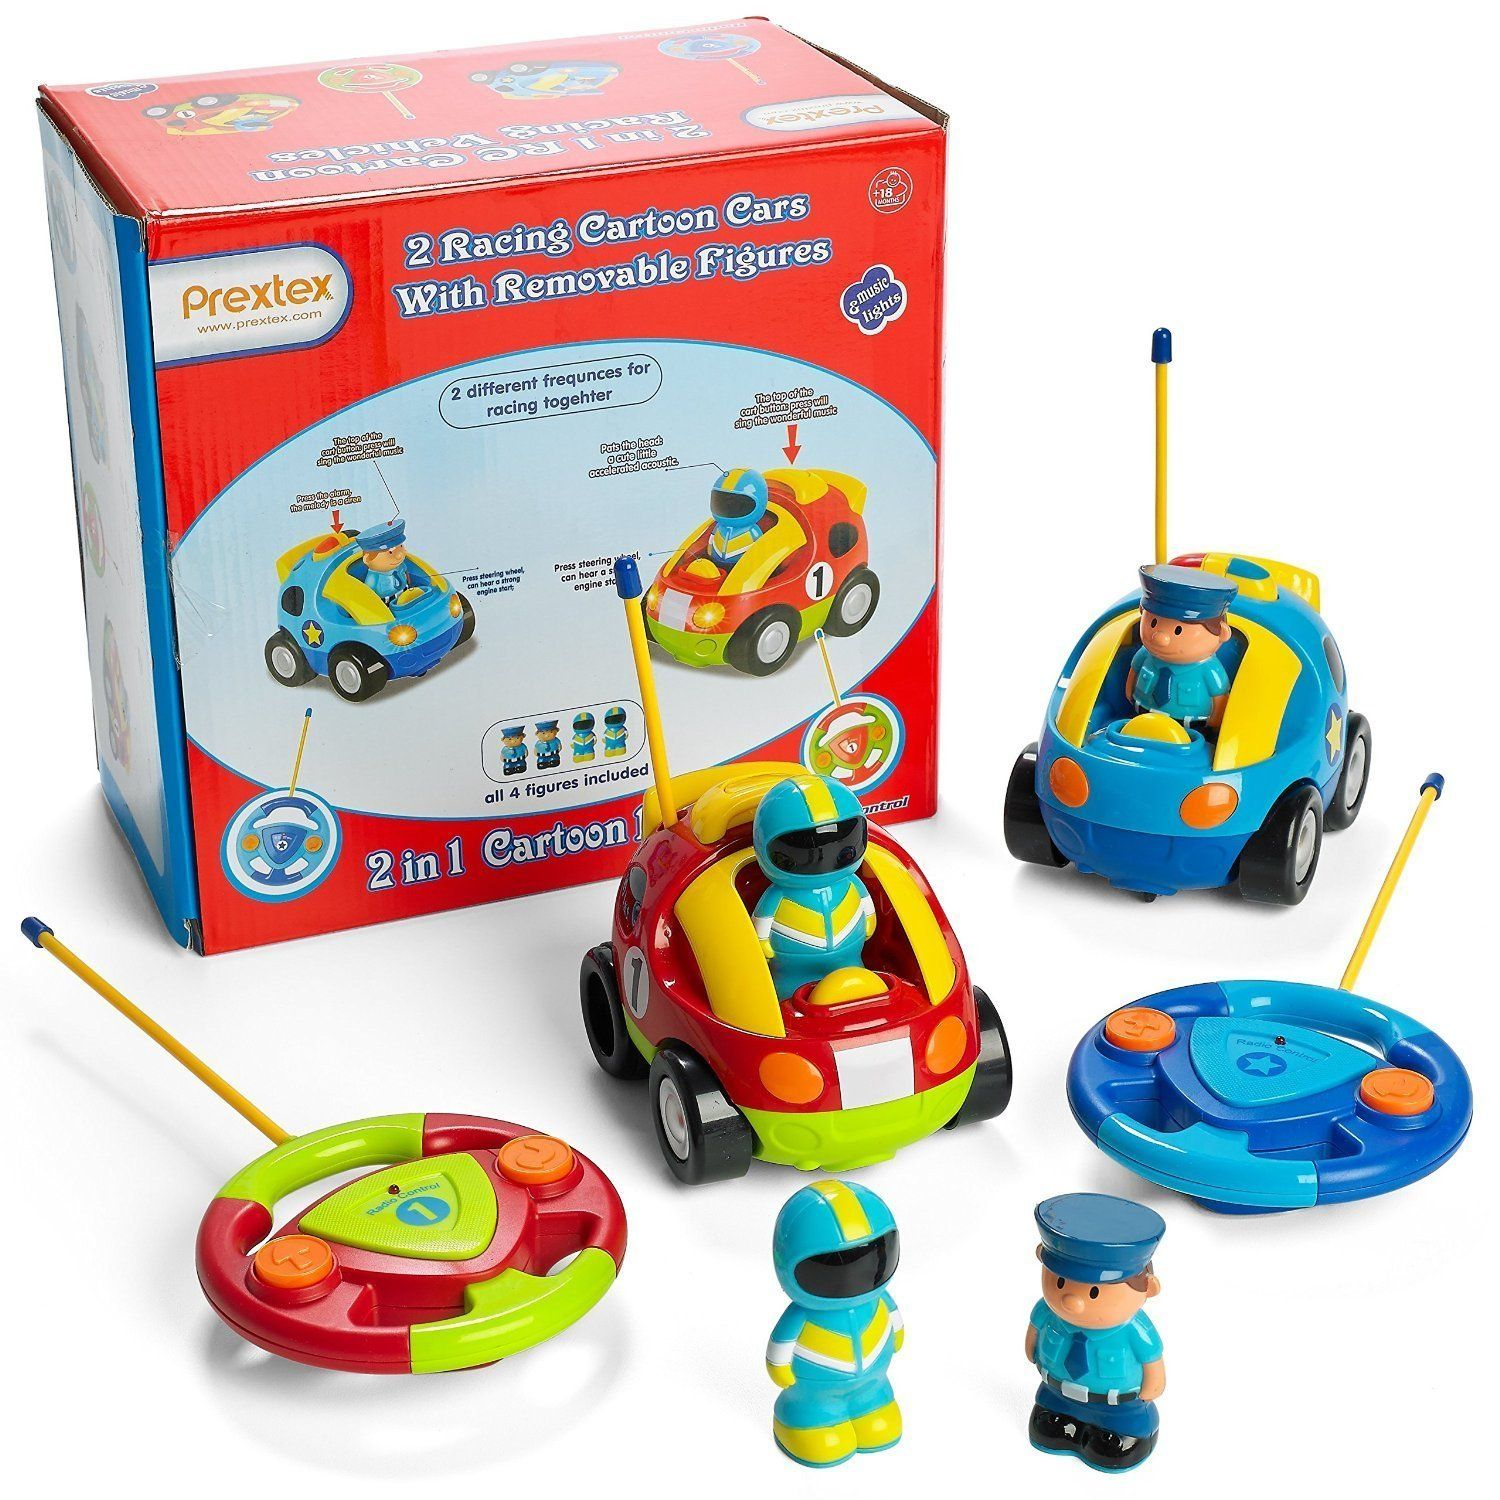 Best Hot New Toys For Christmas and Birthday Gift Ideas for Kids